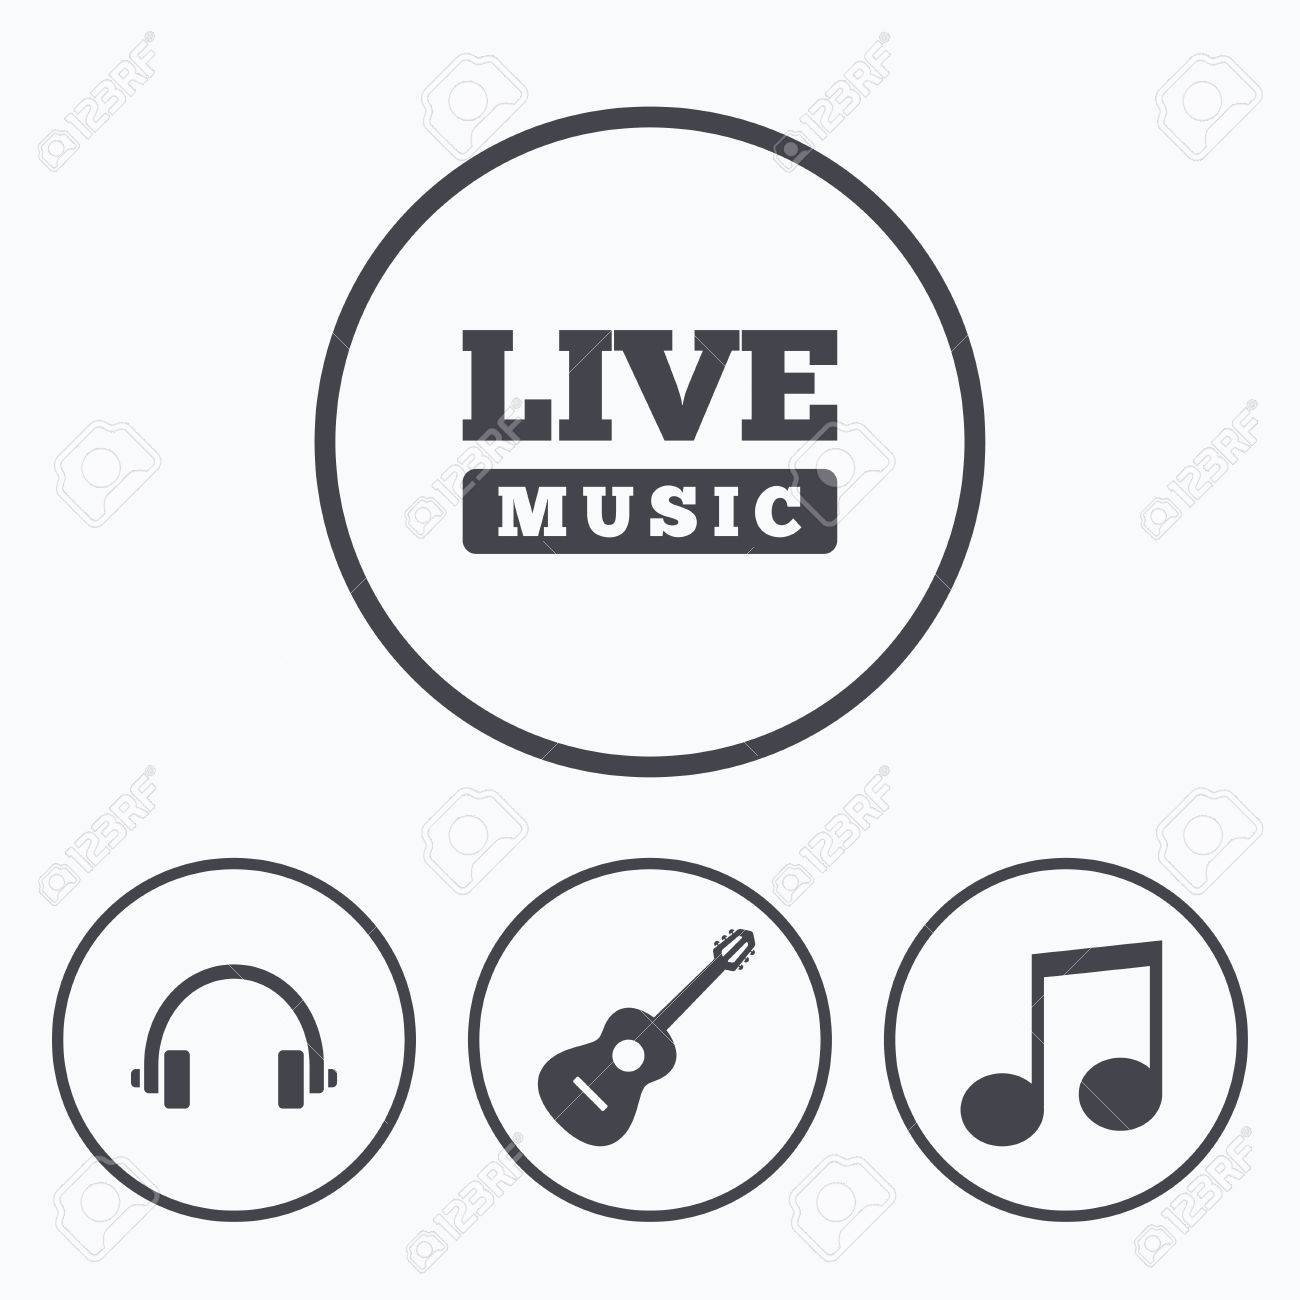 Musical elements icons musical note key and live music symbols musical elements icons musical note key and live music symbols headphones and acoustic guitar buycottarizona Gallery